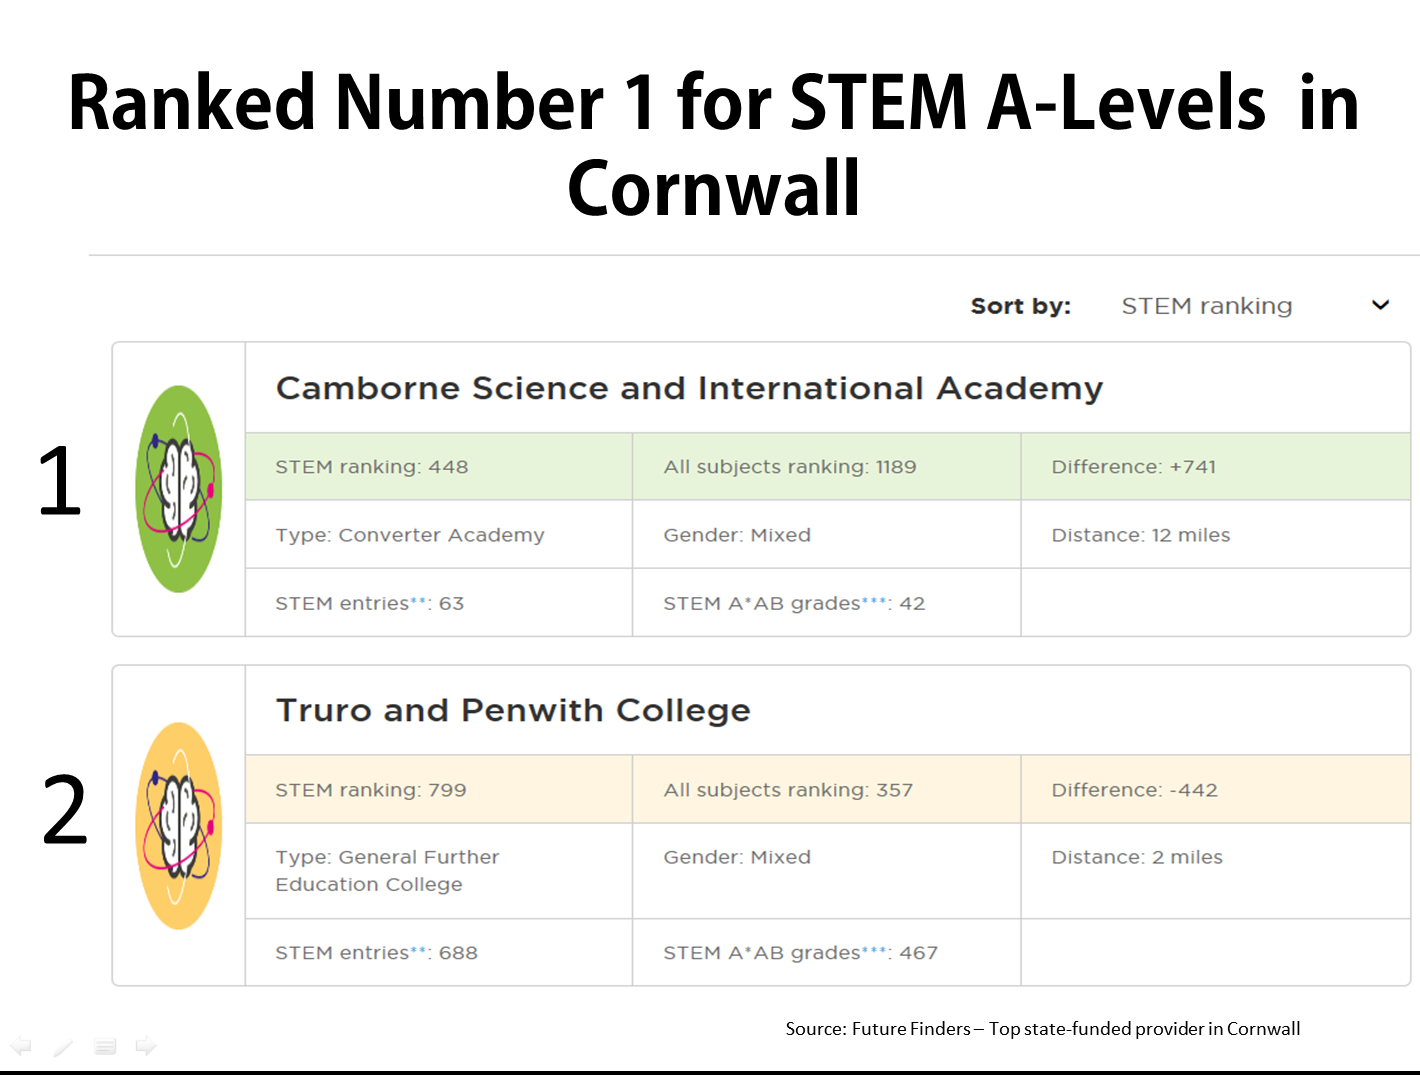 We're the top state funded STEM A-Level provider in Cornwall